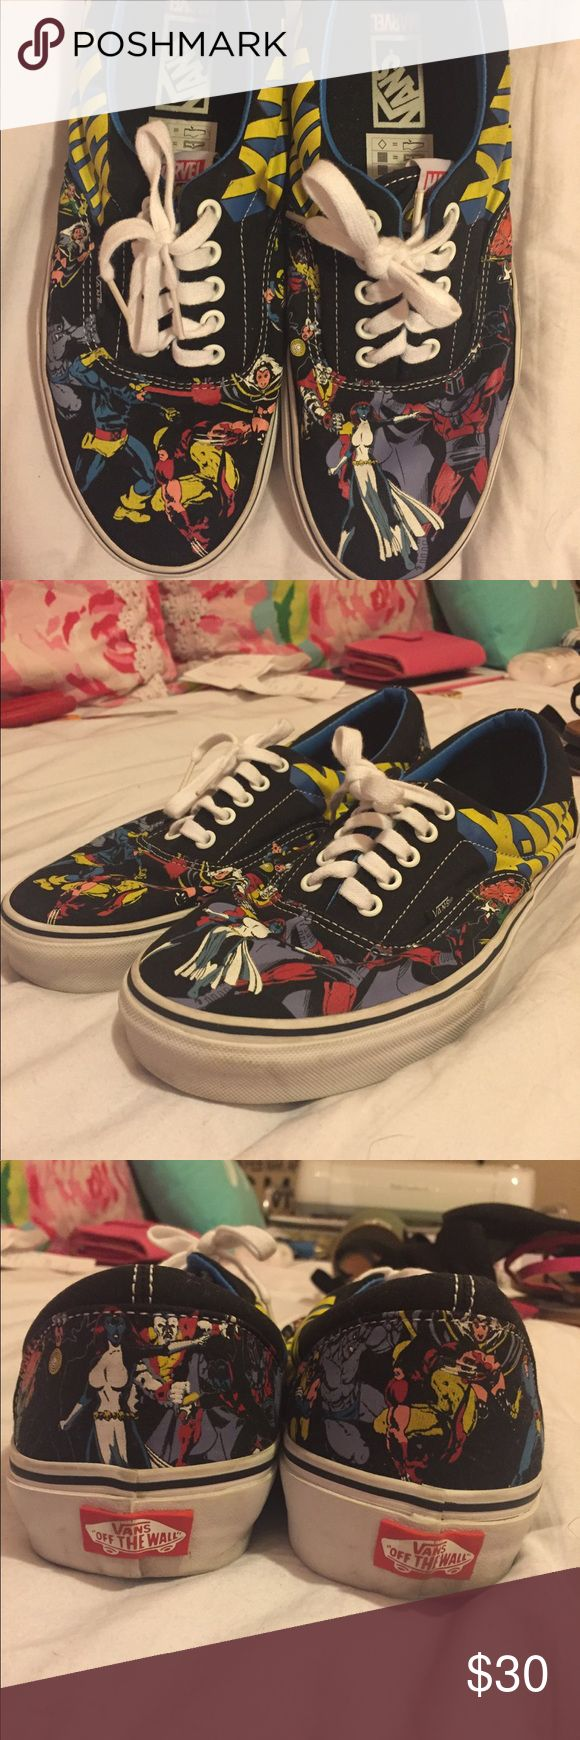 Marvel X-Men Vans Skate Shoes! Marvel X-Men Vans Skate Shoes! These are my favorite pair of shoes ever, but they don't fit. They're advertized as a size Men's 10 (Women's 11.5), but they were very tight, so I am going to say that they would best fit a Men's 8-9 (Women's 10-11). Bought used from eBay for a STEAL and never wore myself. LIMITED EDITION! A little ditty around the edges, but print itself and laces look perfect. Price is negotiable! Questions? Need more photos or measurements?…